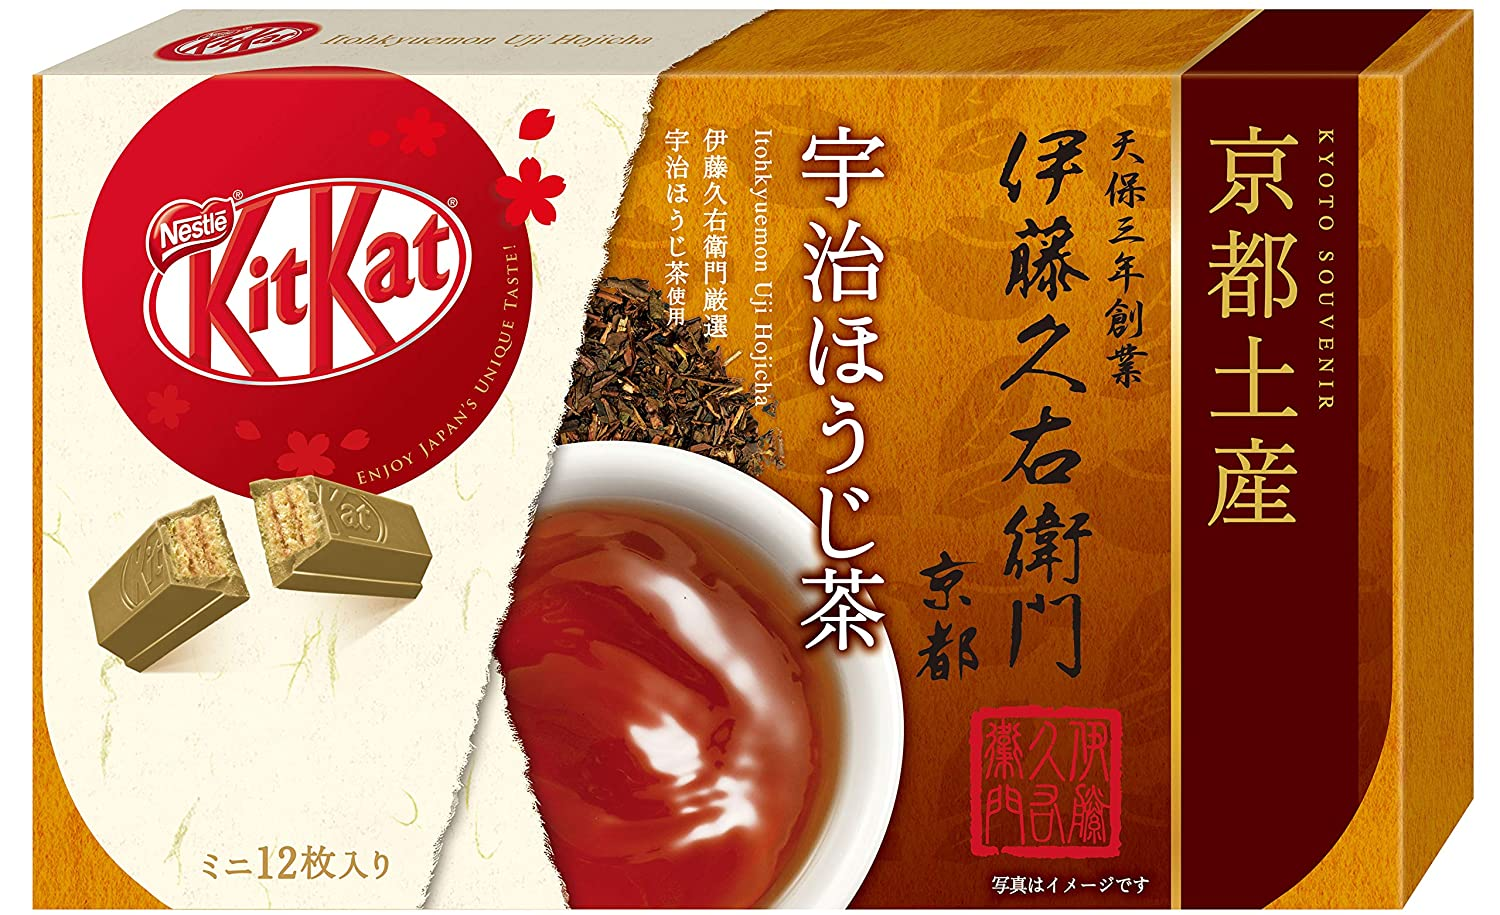 Ito Kyuemon Nestl? collaboration Uji Hojicha Kit Kat chocolate Kyoto Limited Edition input 12 sheets